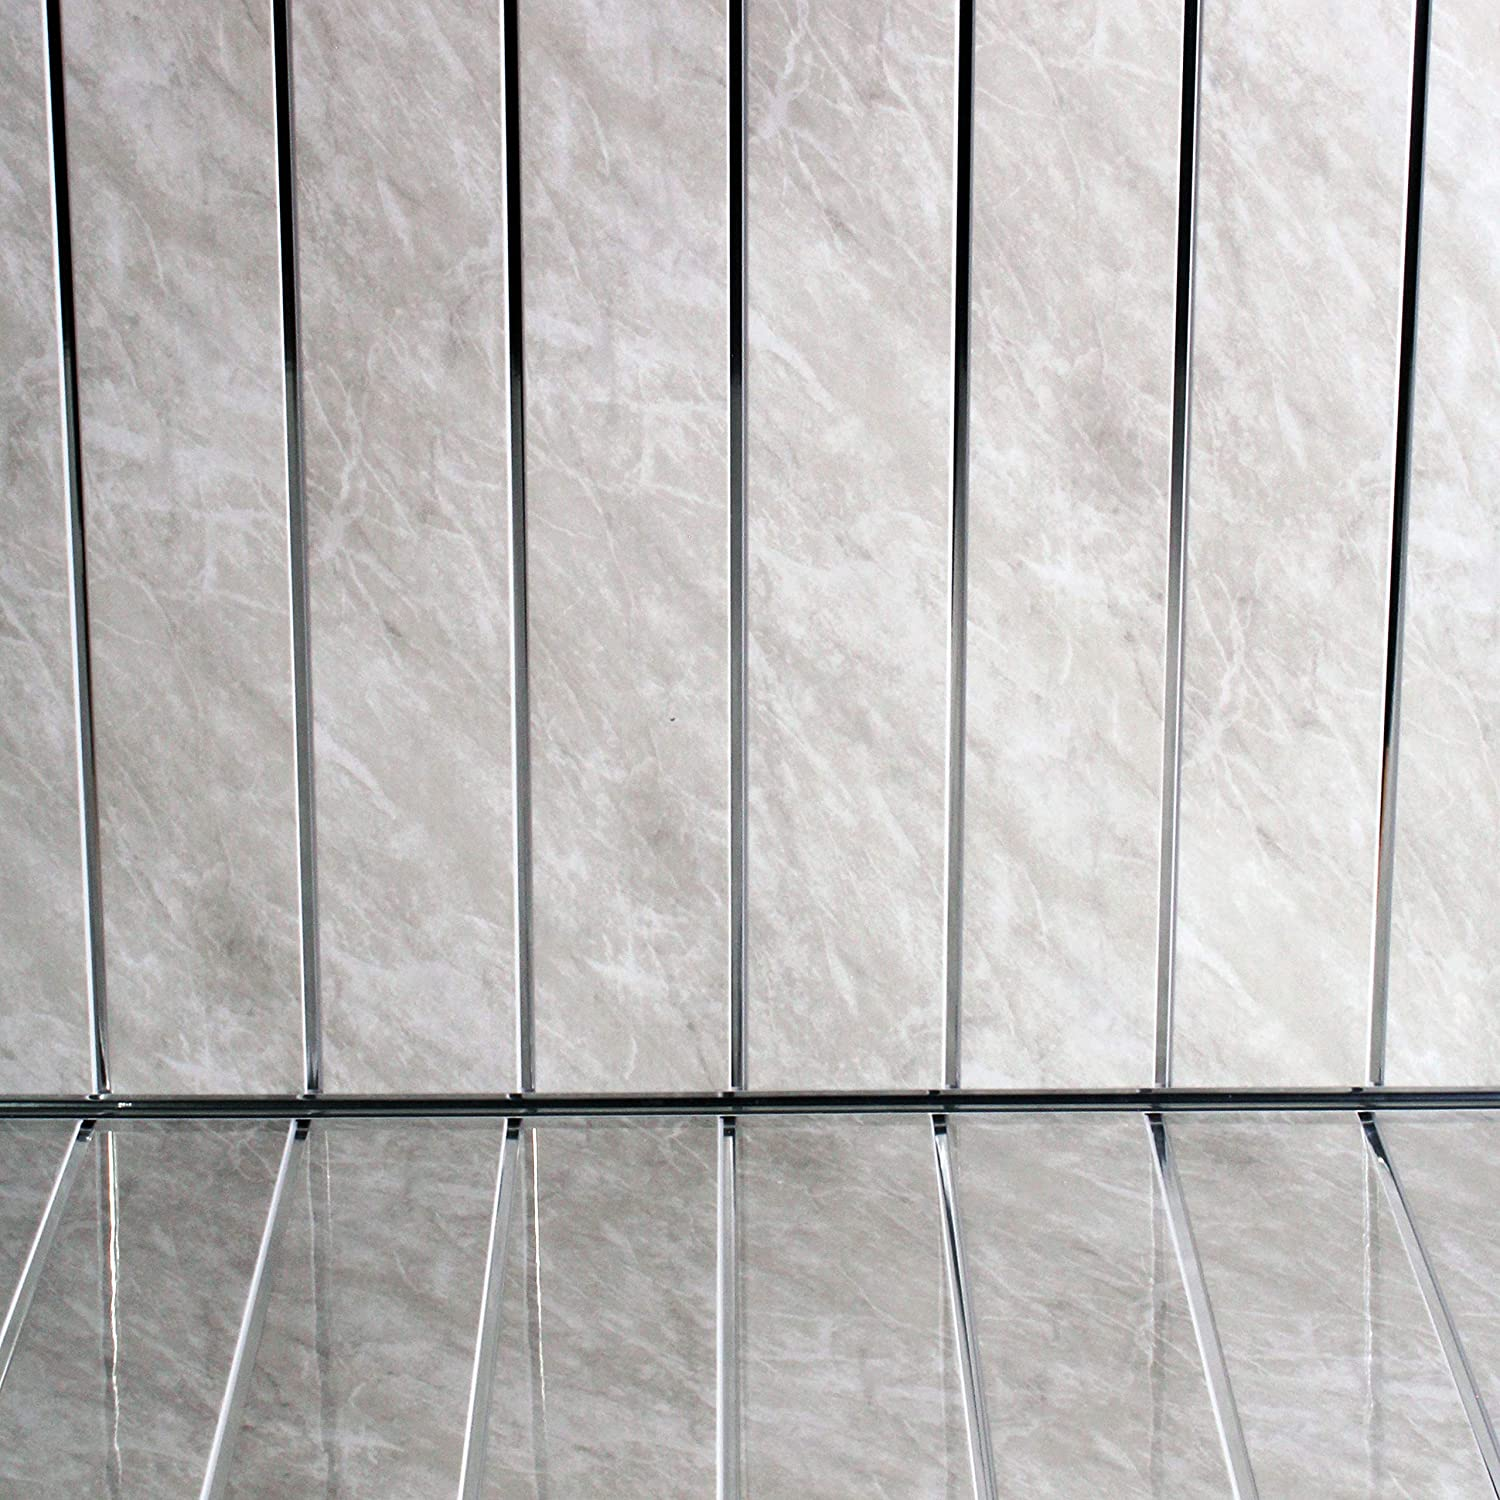 60 Platinum Grey Marble Silver Bathroom PVC Cladding Plastic Shower Wall Panels 8MM